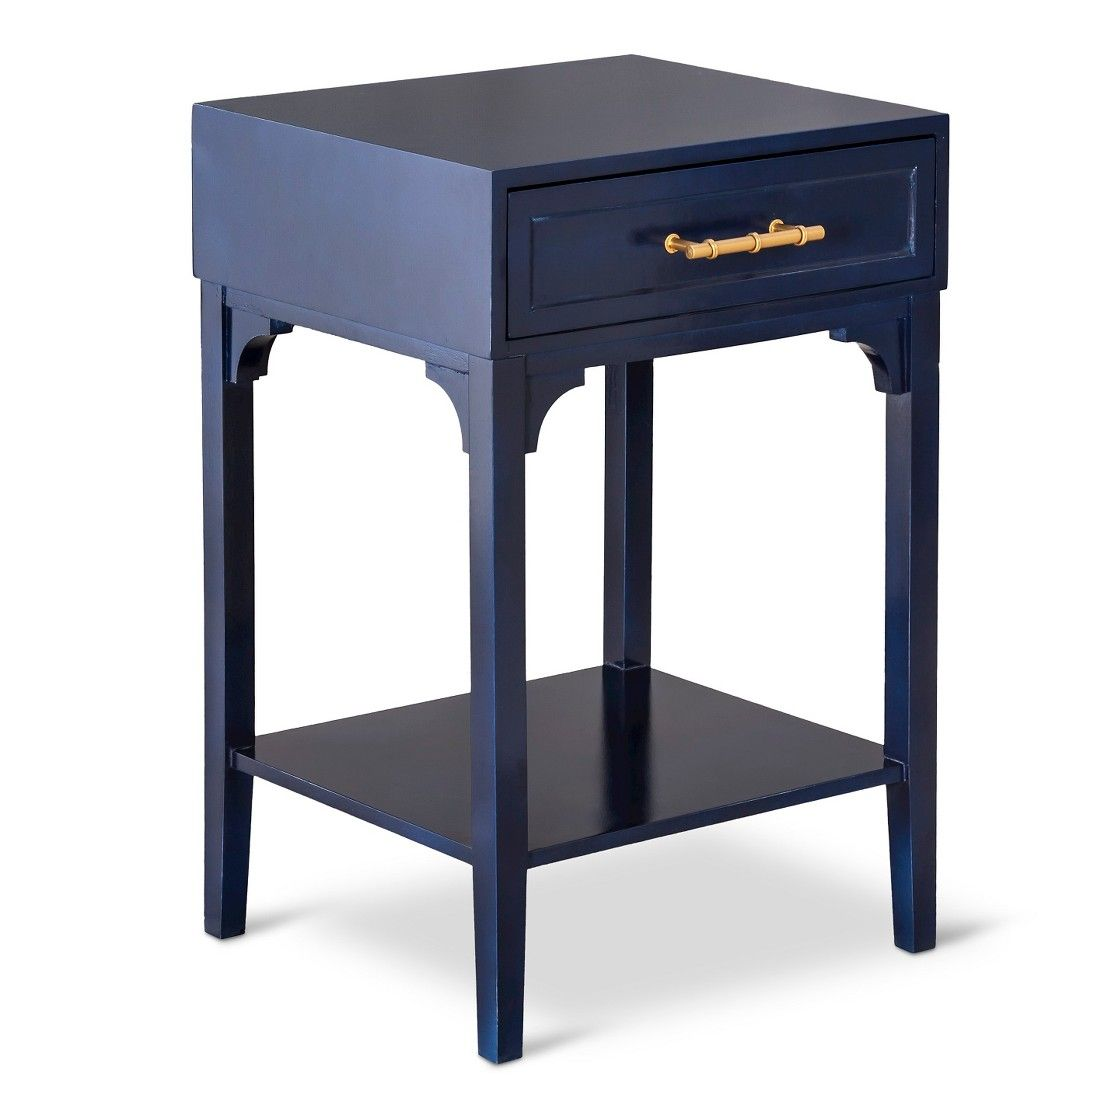 end table home decor misc needs target margate accent bunnings cane chairs wine rack dining room marble and walnut coffee best outdoor wooden door threshold treasure garden patio